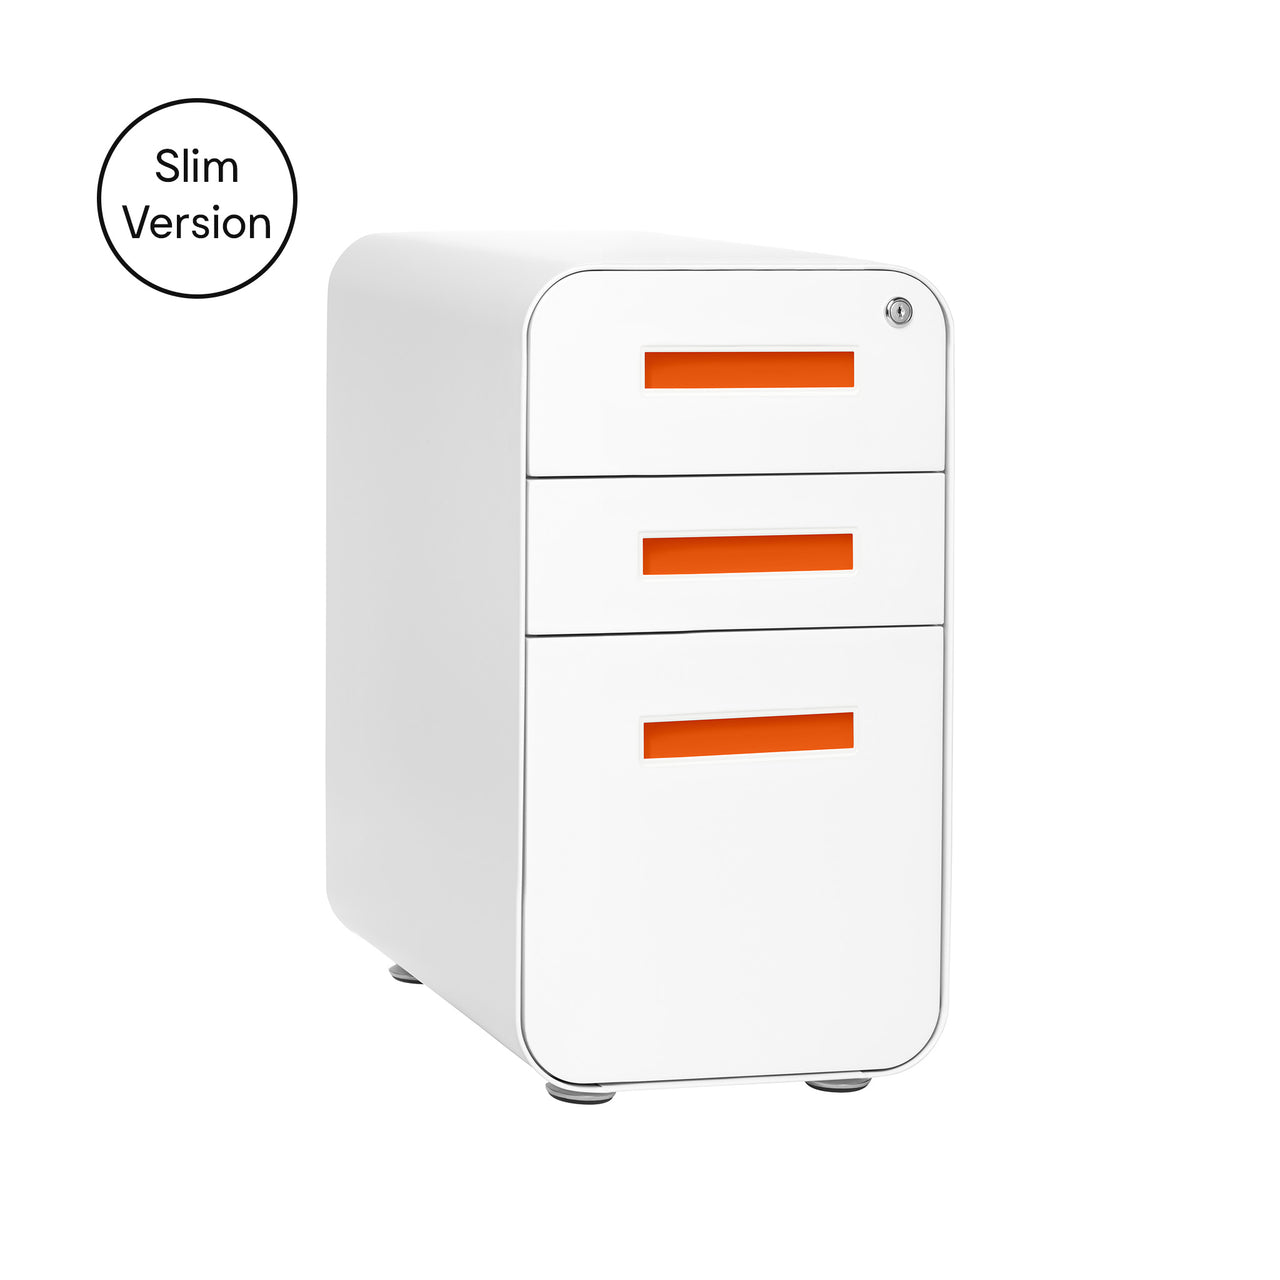 Stockpile Slim File Cabinet (White/Orange)